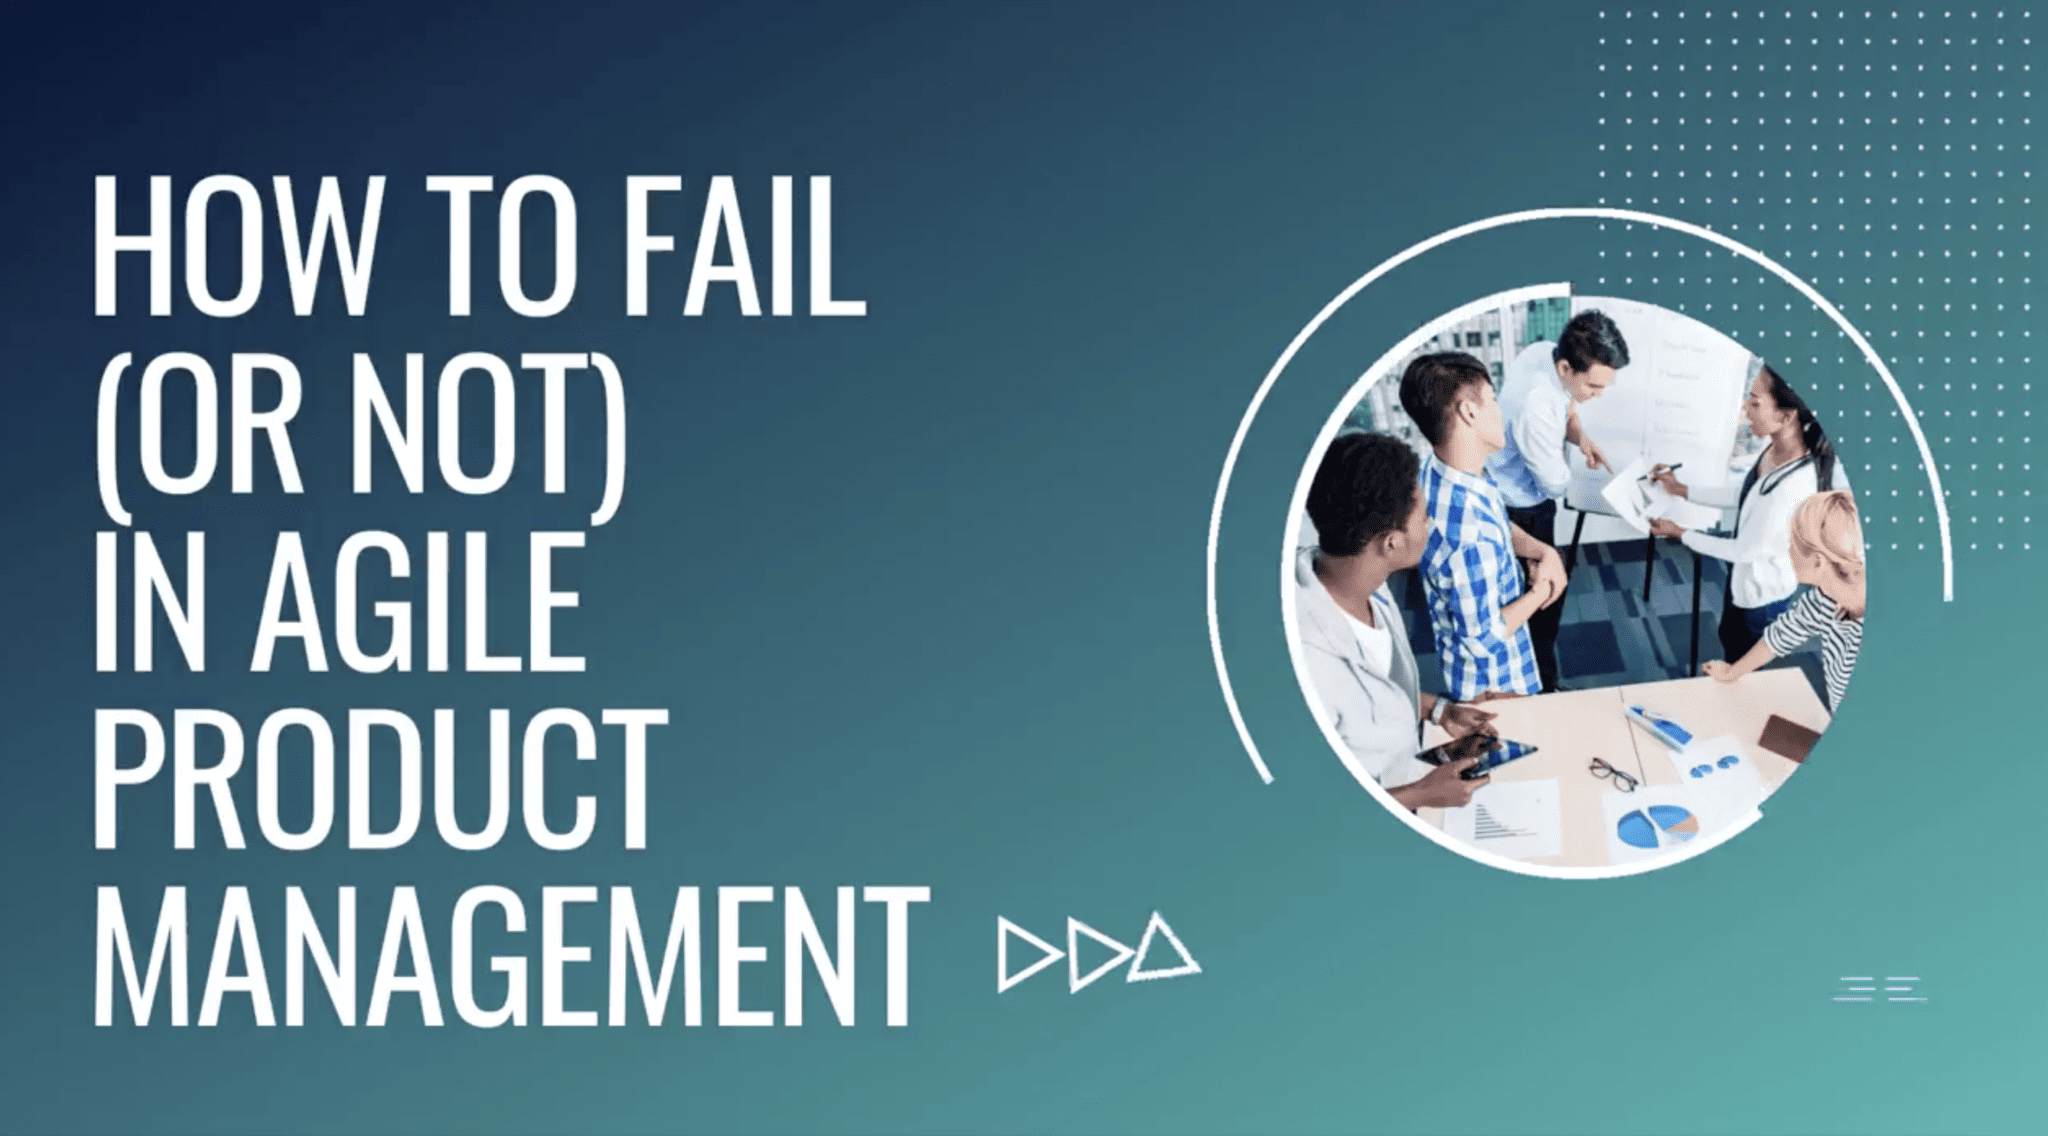 How to Fail (or Not) in Agile Product Management